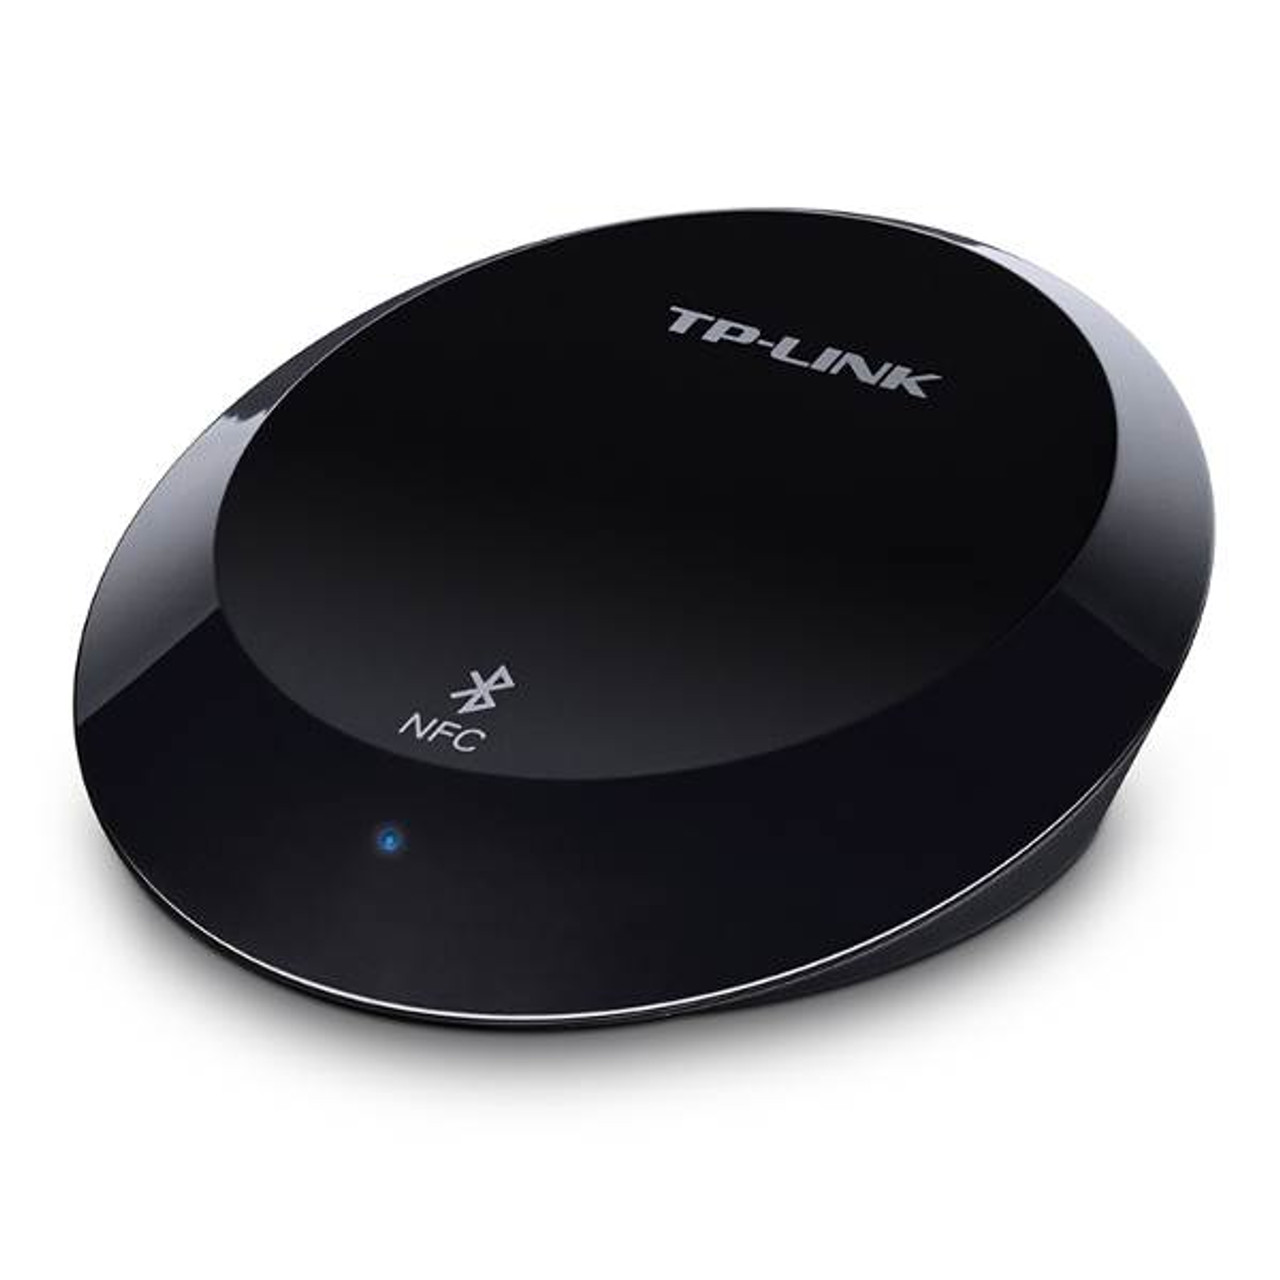 Product image for TP-Link HA100 Bluetooth Music Receiver | CX Computer Superstore